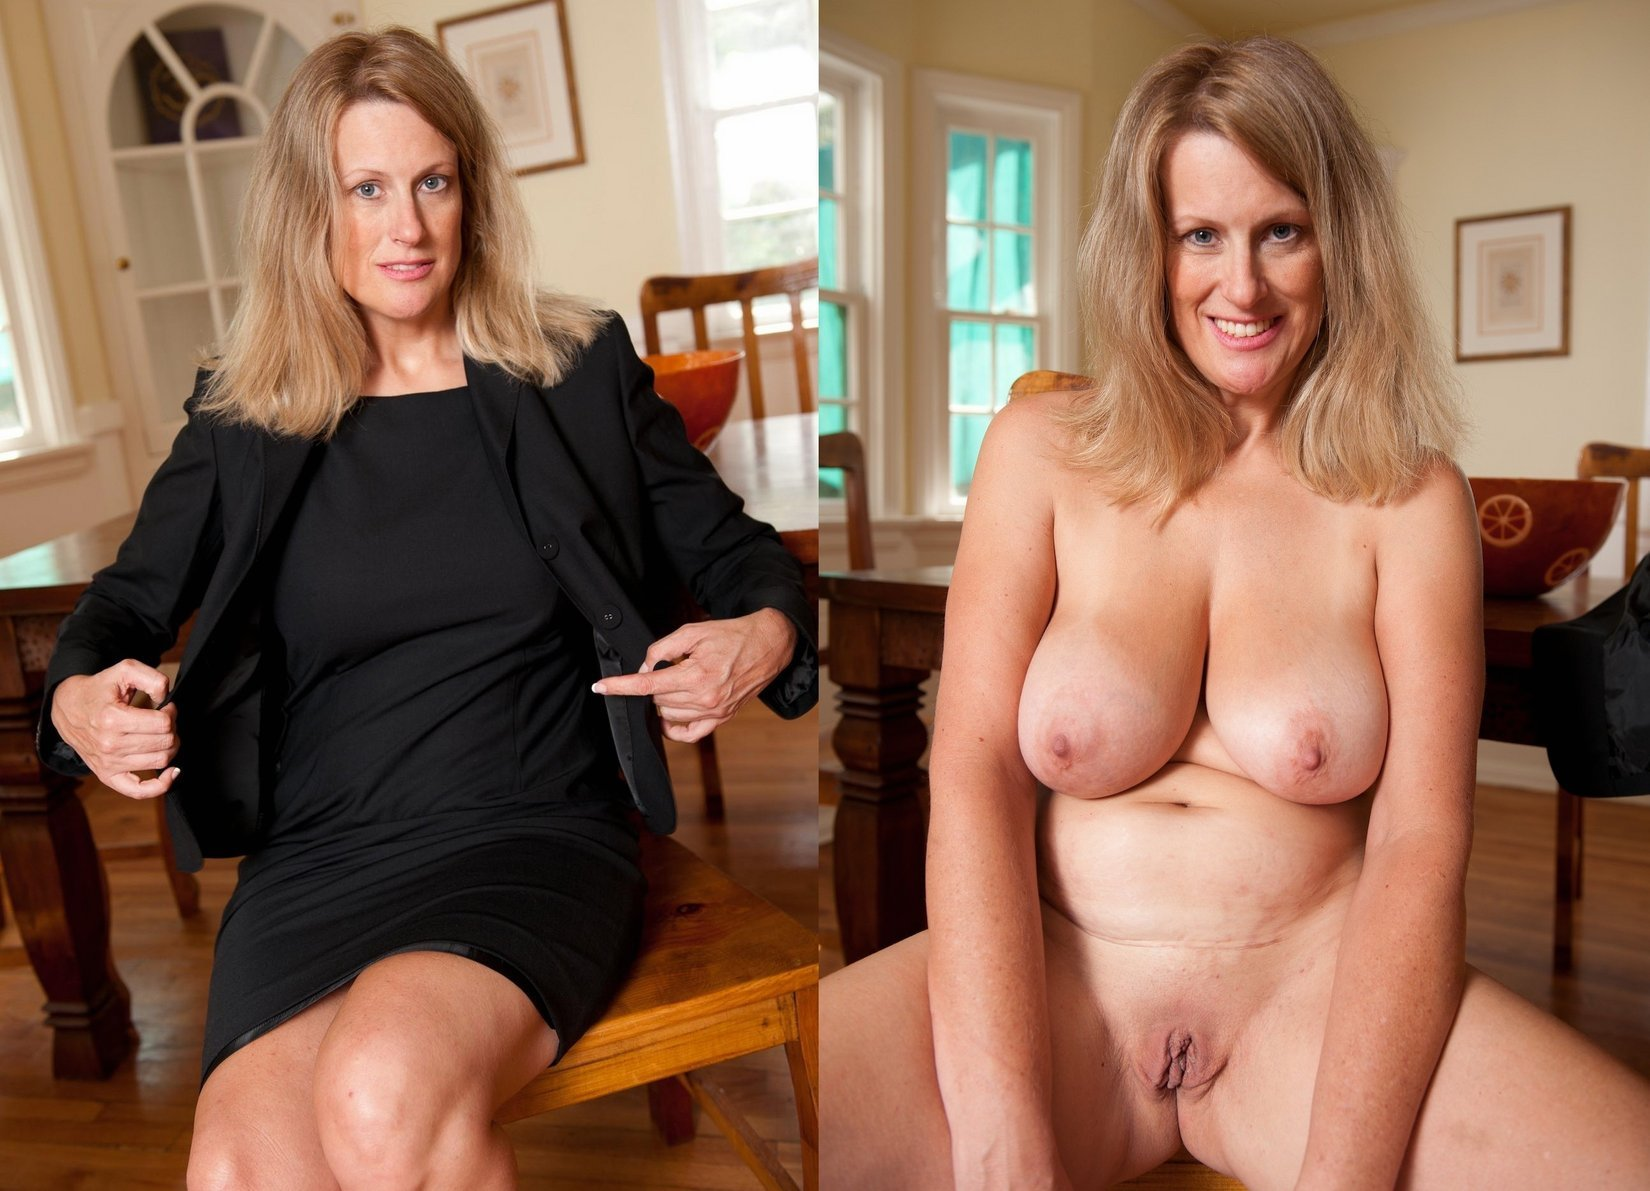 Absolutely incredible hot naked milf with big tits